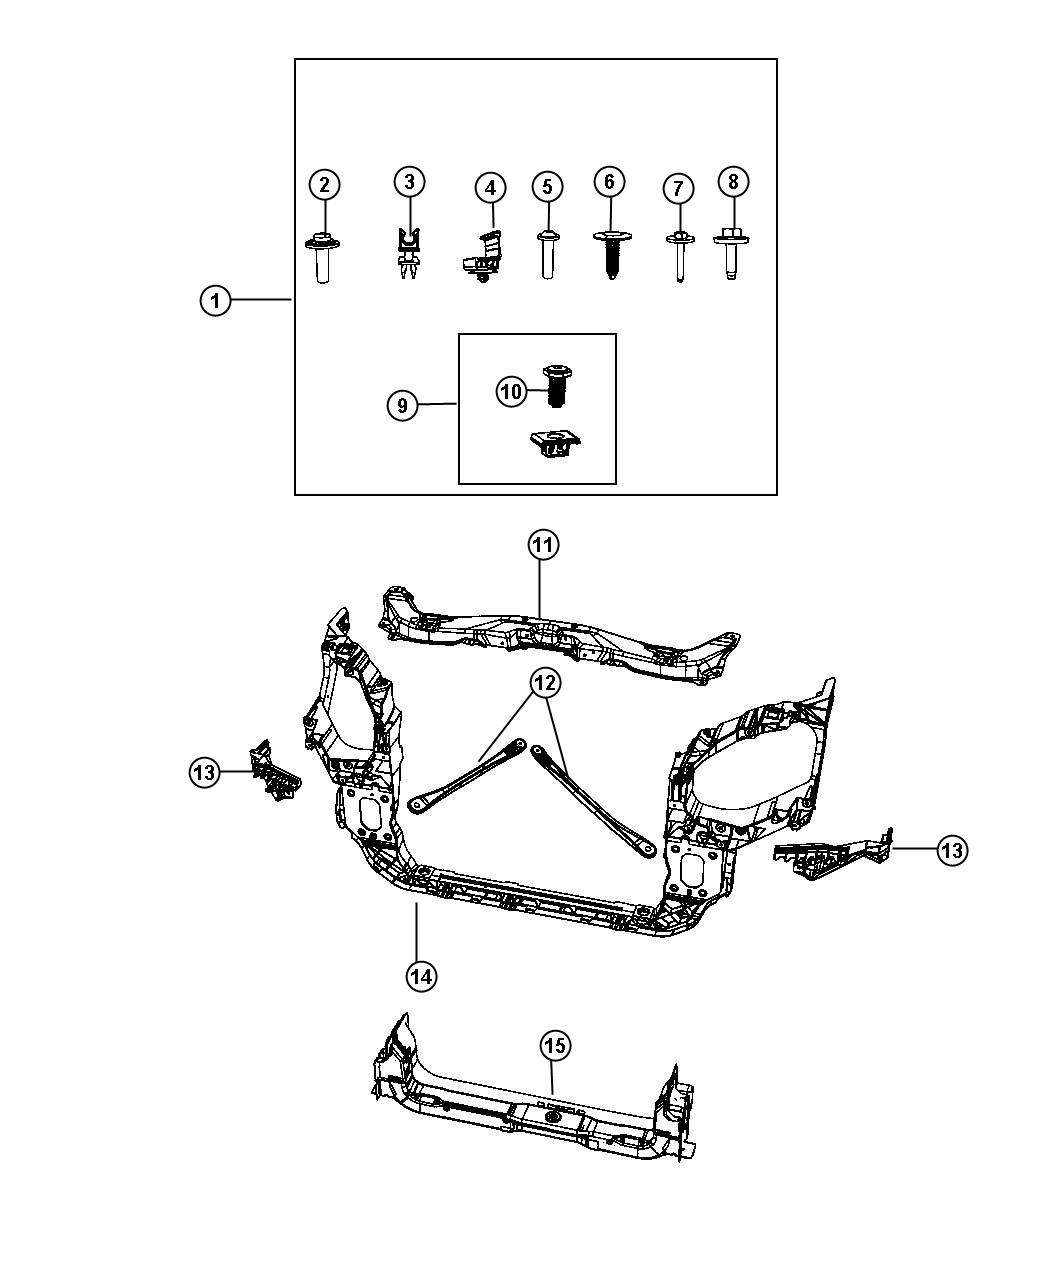 Service manual [Fender To Radiator Brace Removal 2011